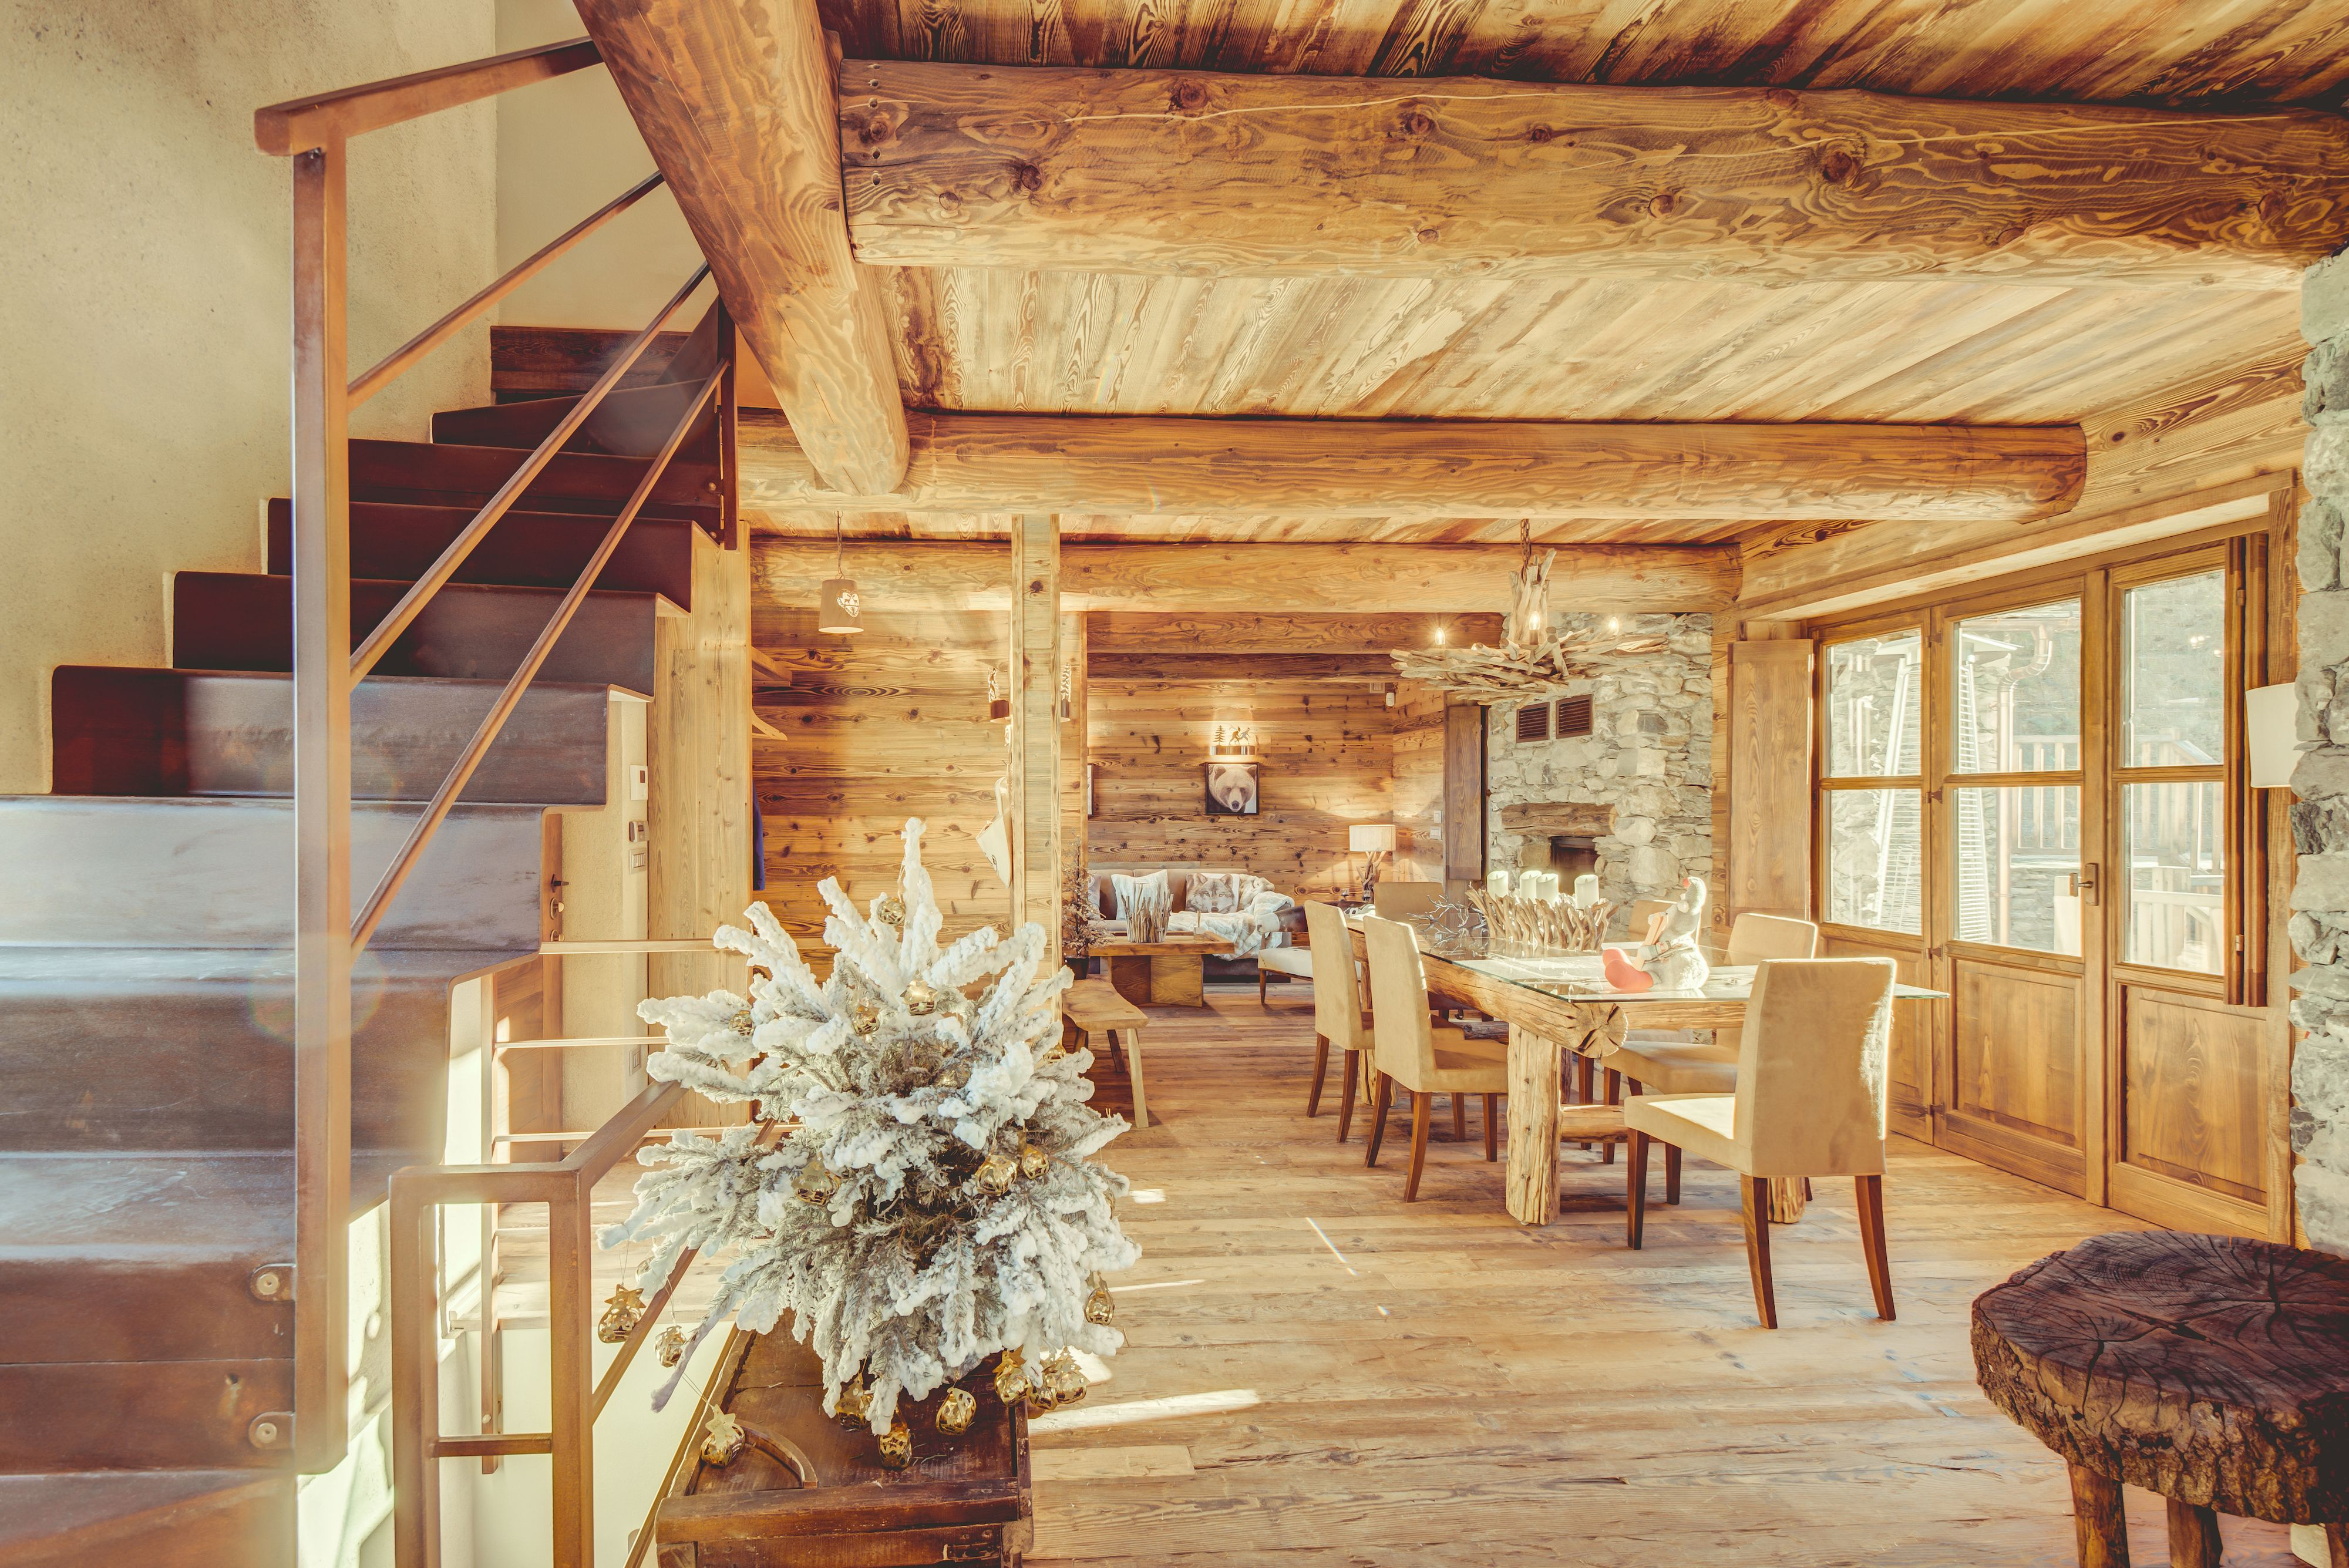 Ski chalet furniture Vintage Ski Ski Chalet Dining Room With Leather Chairs Wooden Floor And Furniture Big Windows With Snow Magazine Ski Chalet Dining Room With Leather Chairs Wooden Floor And